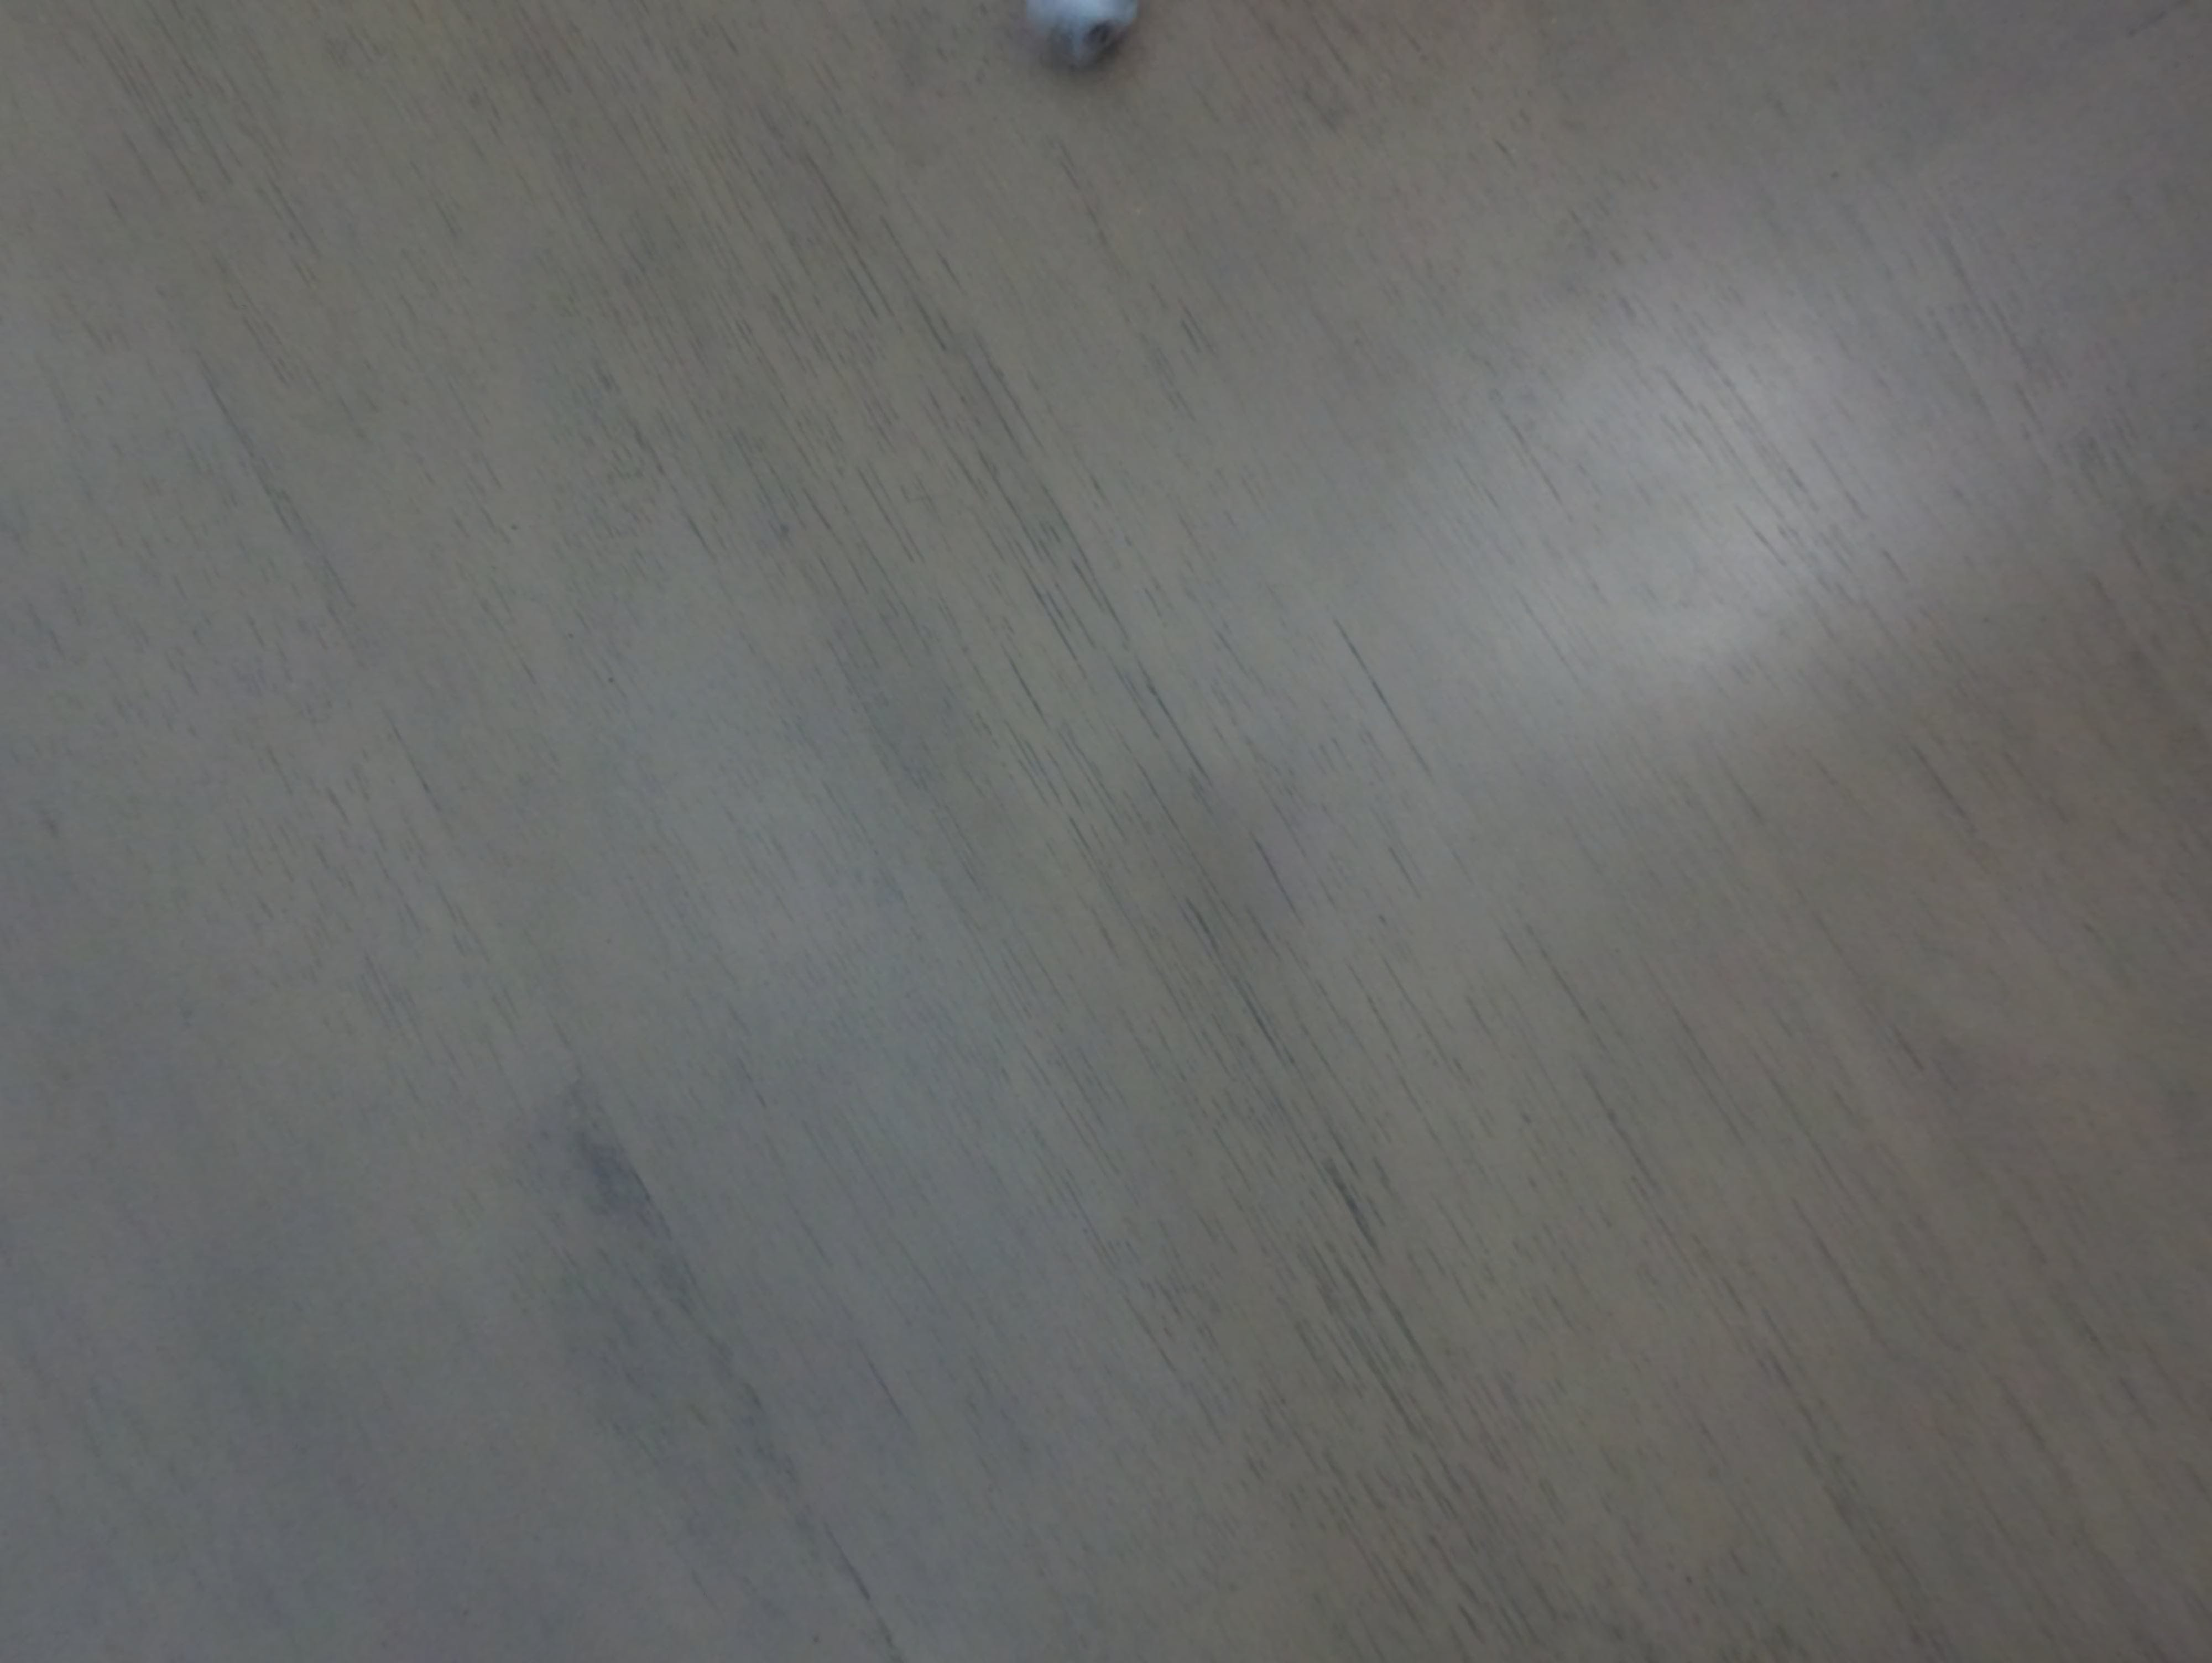 Dice Thrown On A Wooden Surface